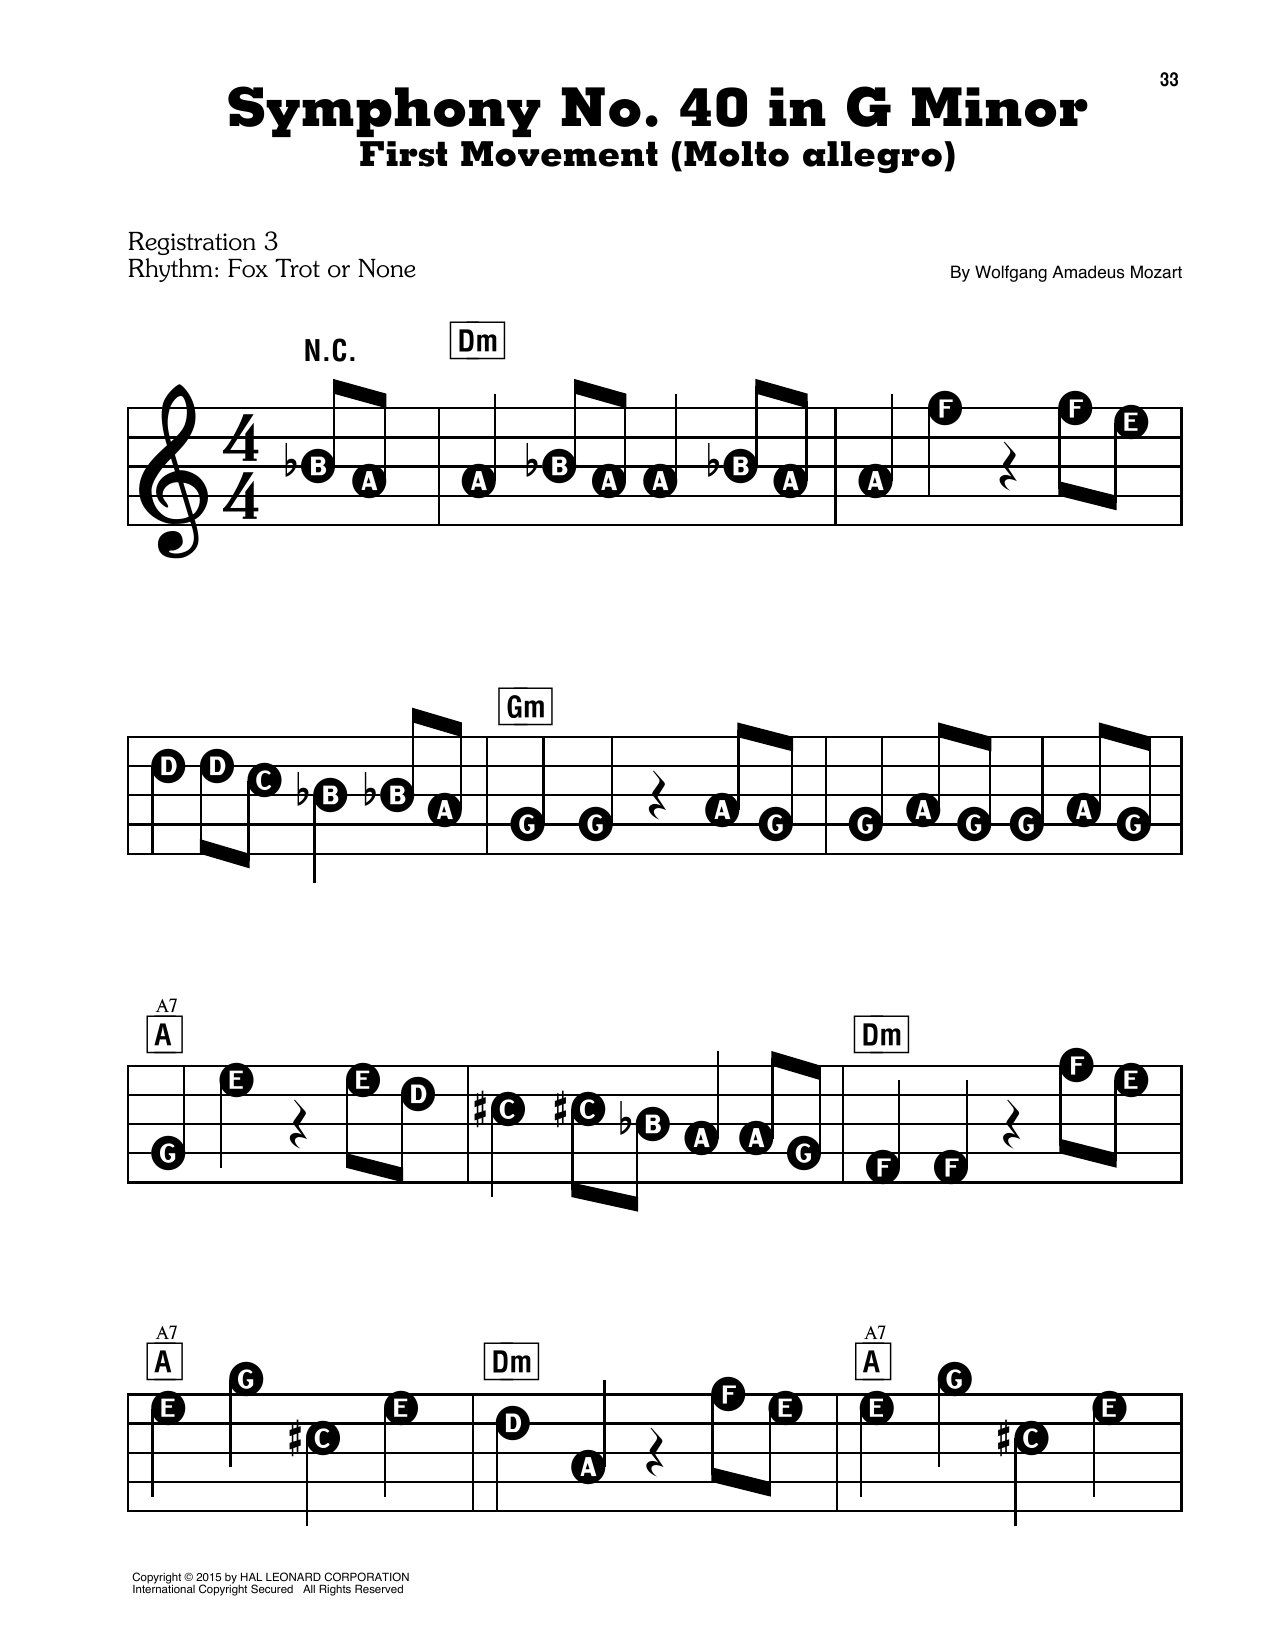 Symphony No. 40 In G Minor, First Movement Excerpt Sheet Music